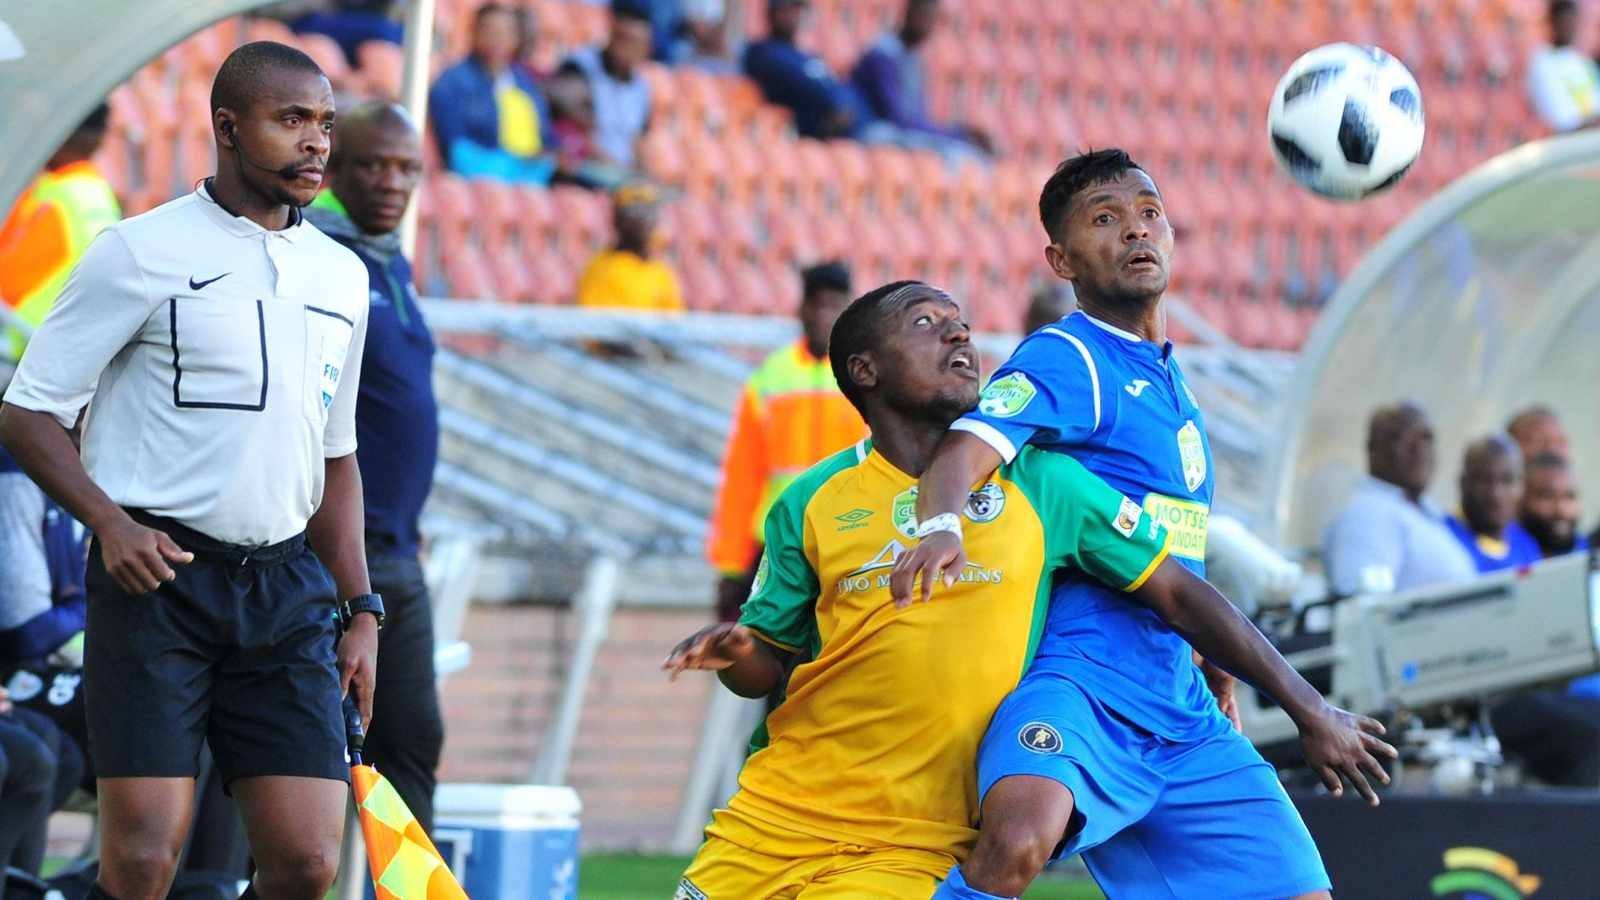 Steenberg promoted to NFD